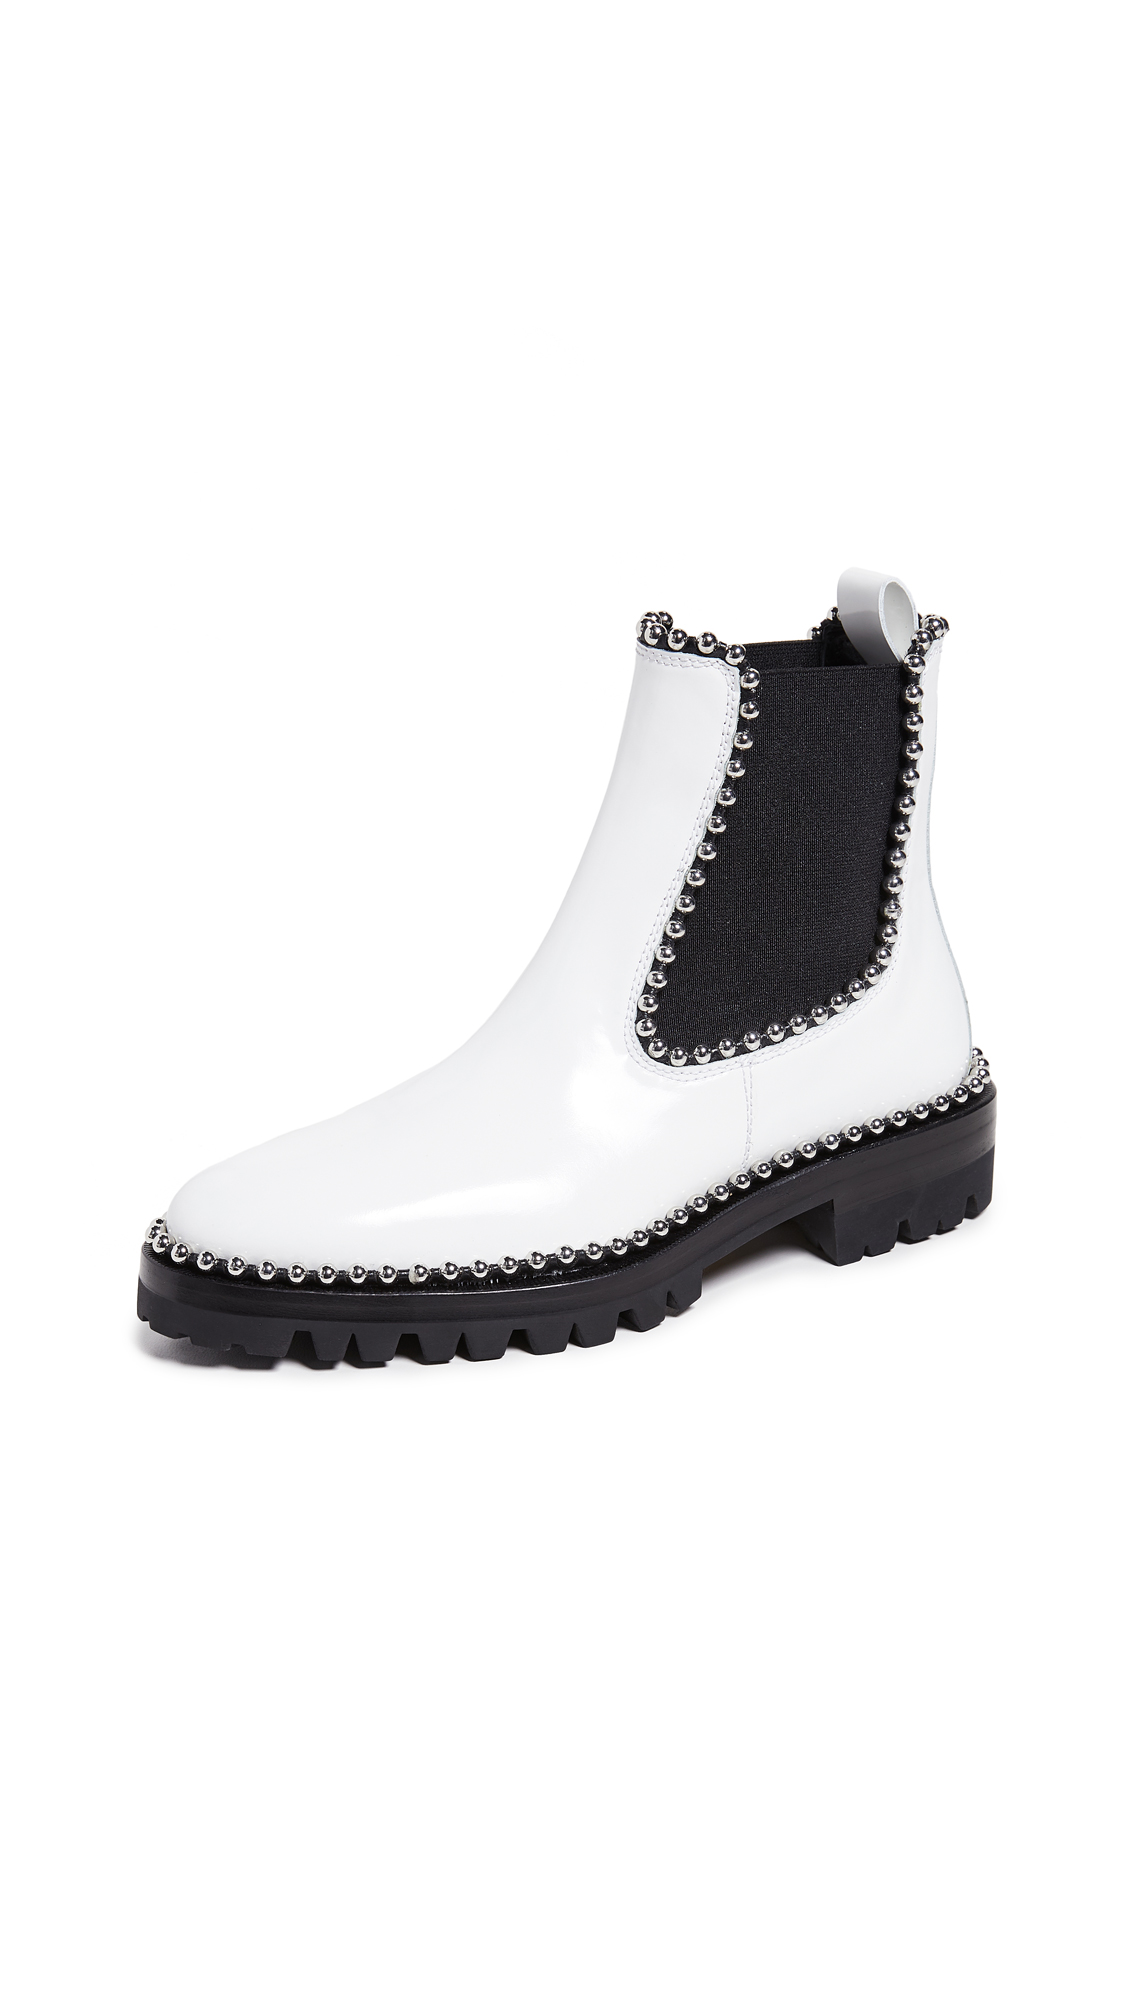 Alexander Wang Spencer Boots - White